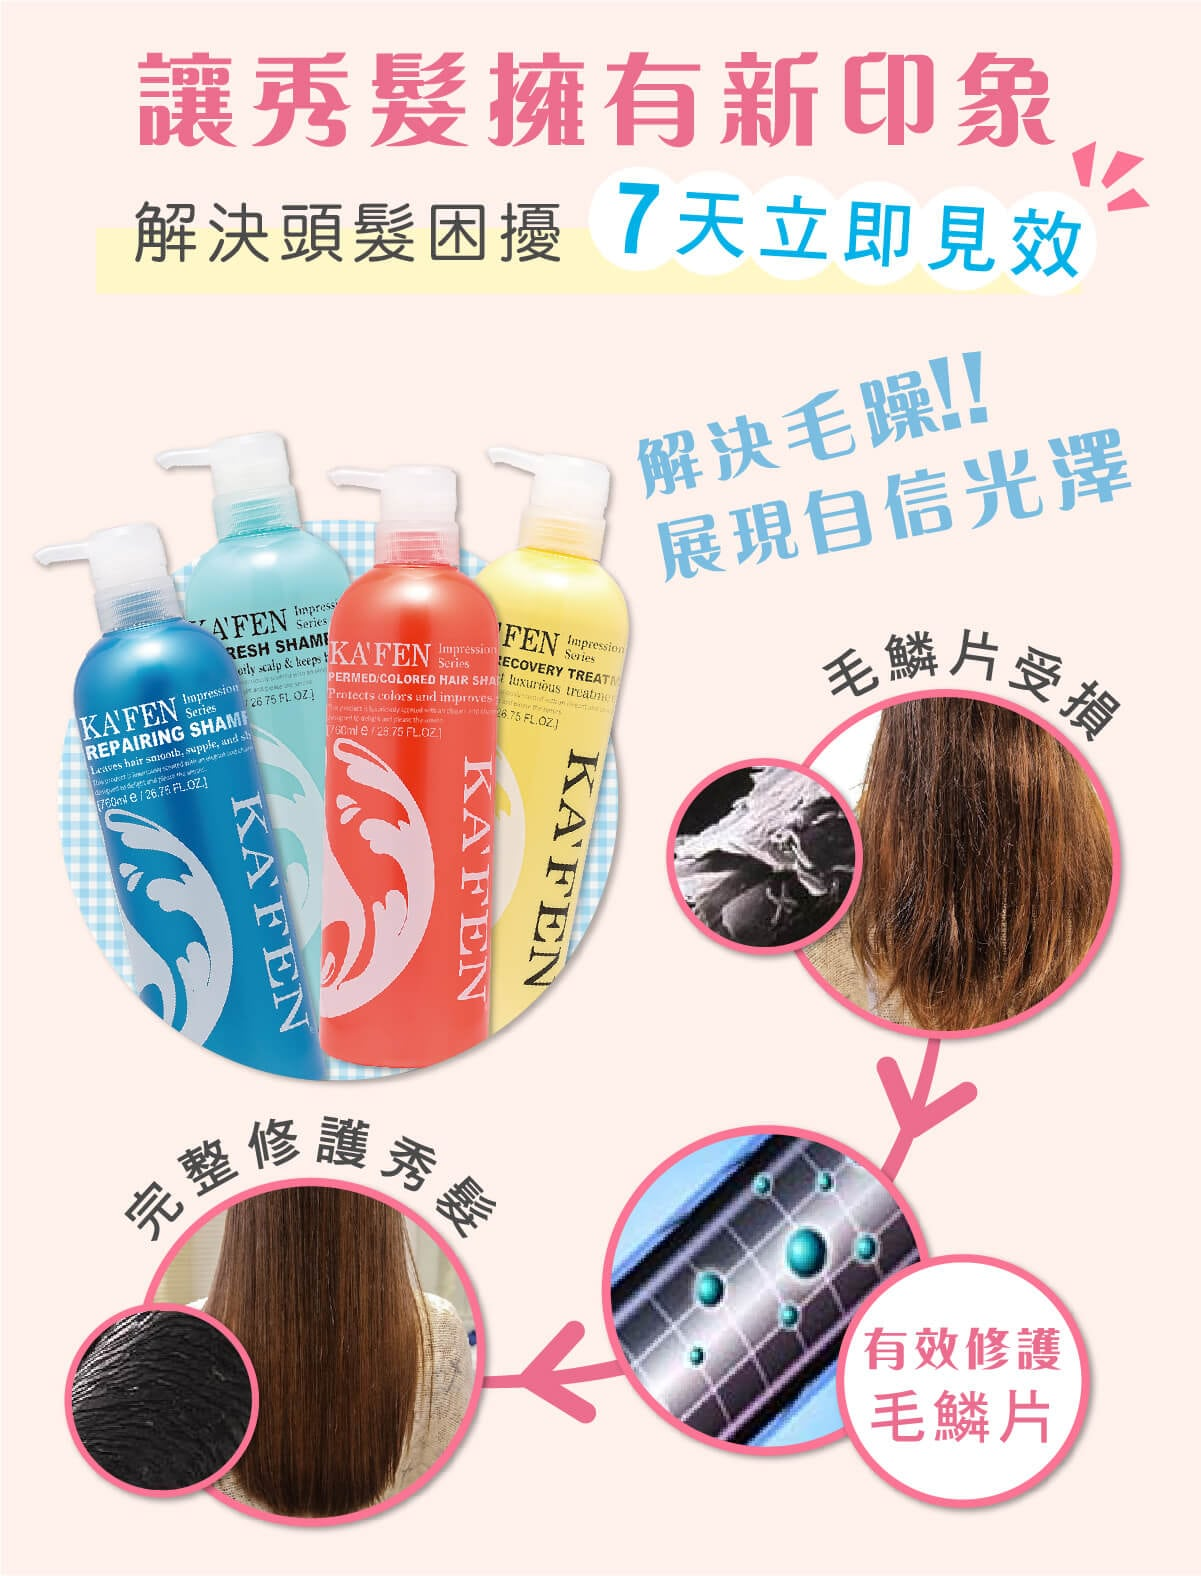 Impression Series Refresh Shampoo - Feature 2